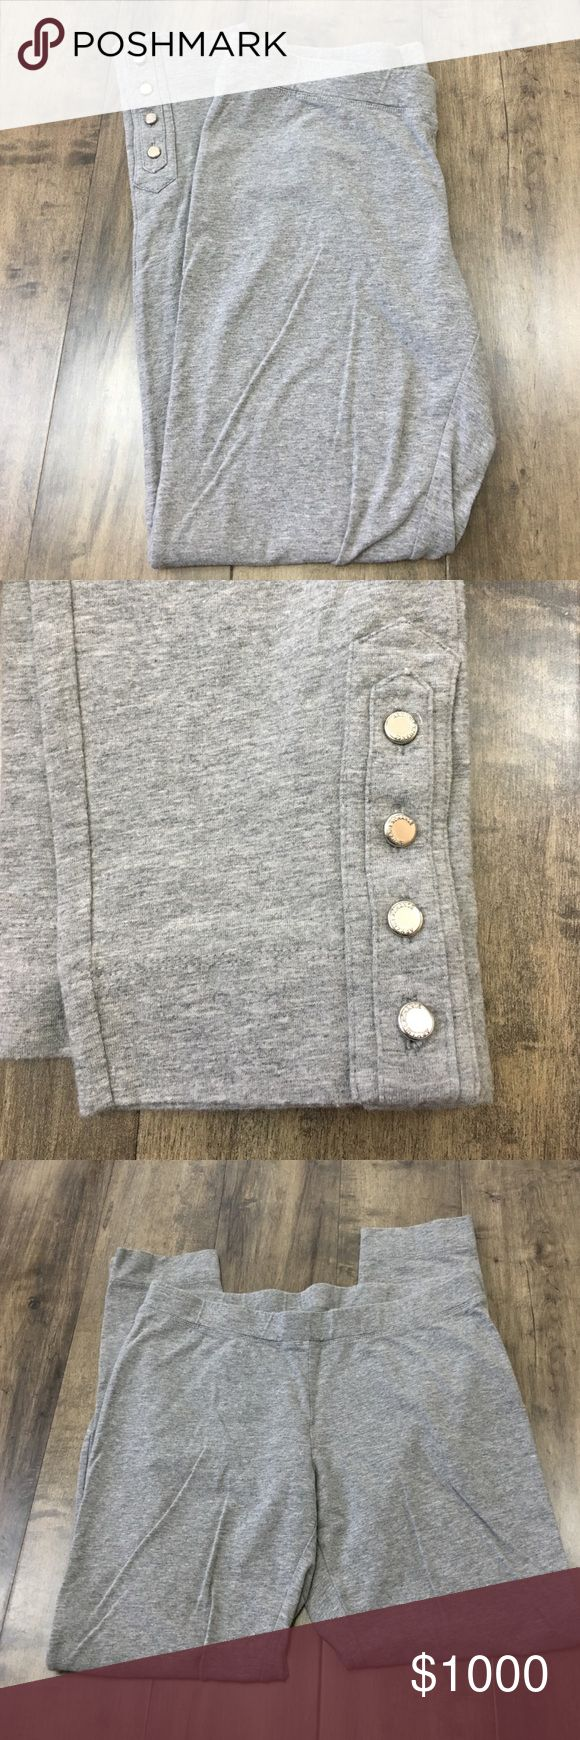 Armani Exchange leggings Armani Exchange grey leggings with button detail on ankle, length 30.5in, inseam 24 in ⚠️ NO PAYPAL ⚠️ NO TRADES ⚠️ NO HOLDS ⚠️ I WILL NOT RESPOND TO OFFERS MADE IN COMMENTS SECTION, SO PLEASE USE OFFER BUTTON. Armani Exchange Pants Leggings